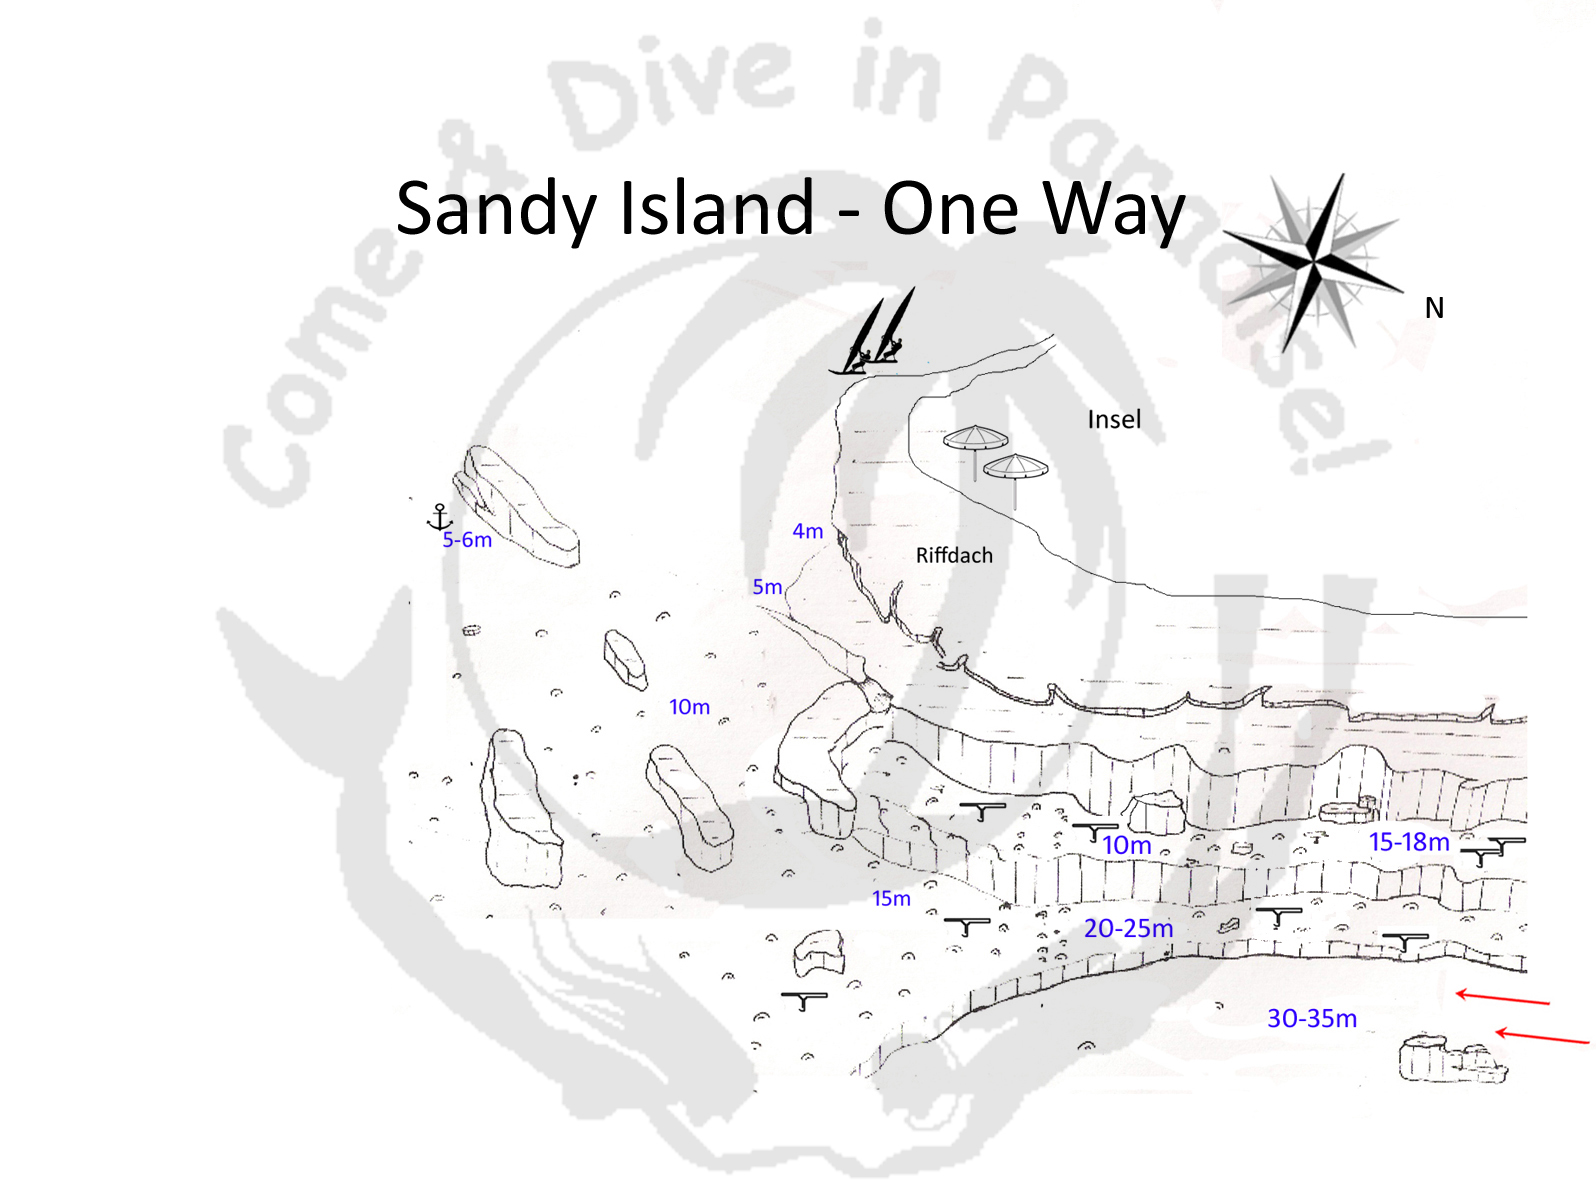 sandy_island_one_way.jpg